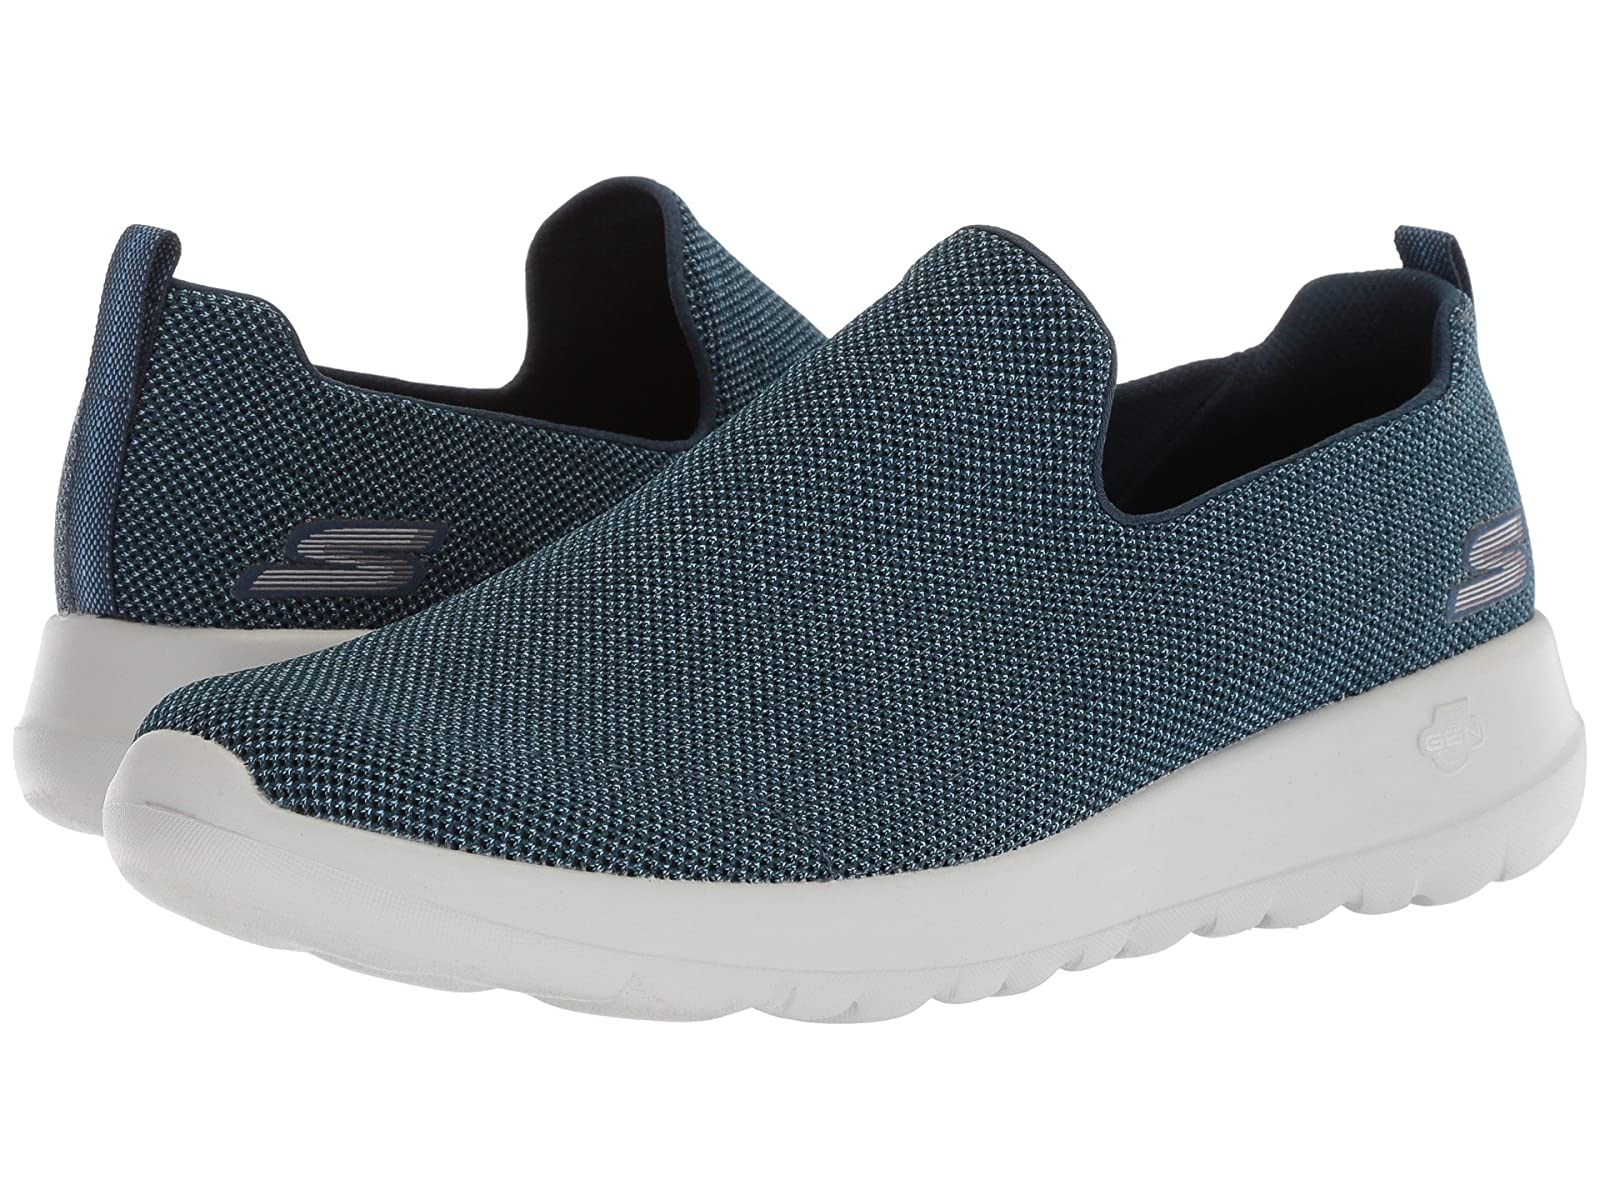 SKECHERS Performance Go Walk Max - CentricAtmospheric grades have affordable shoes